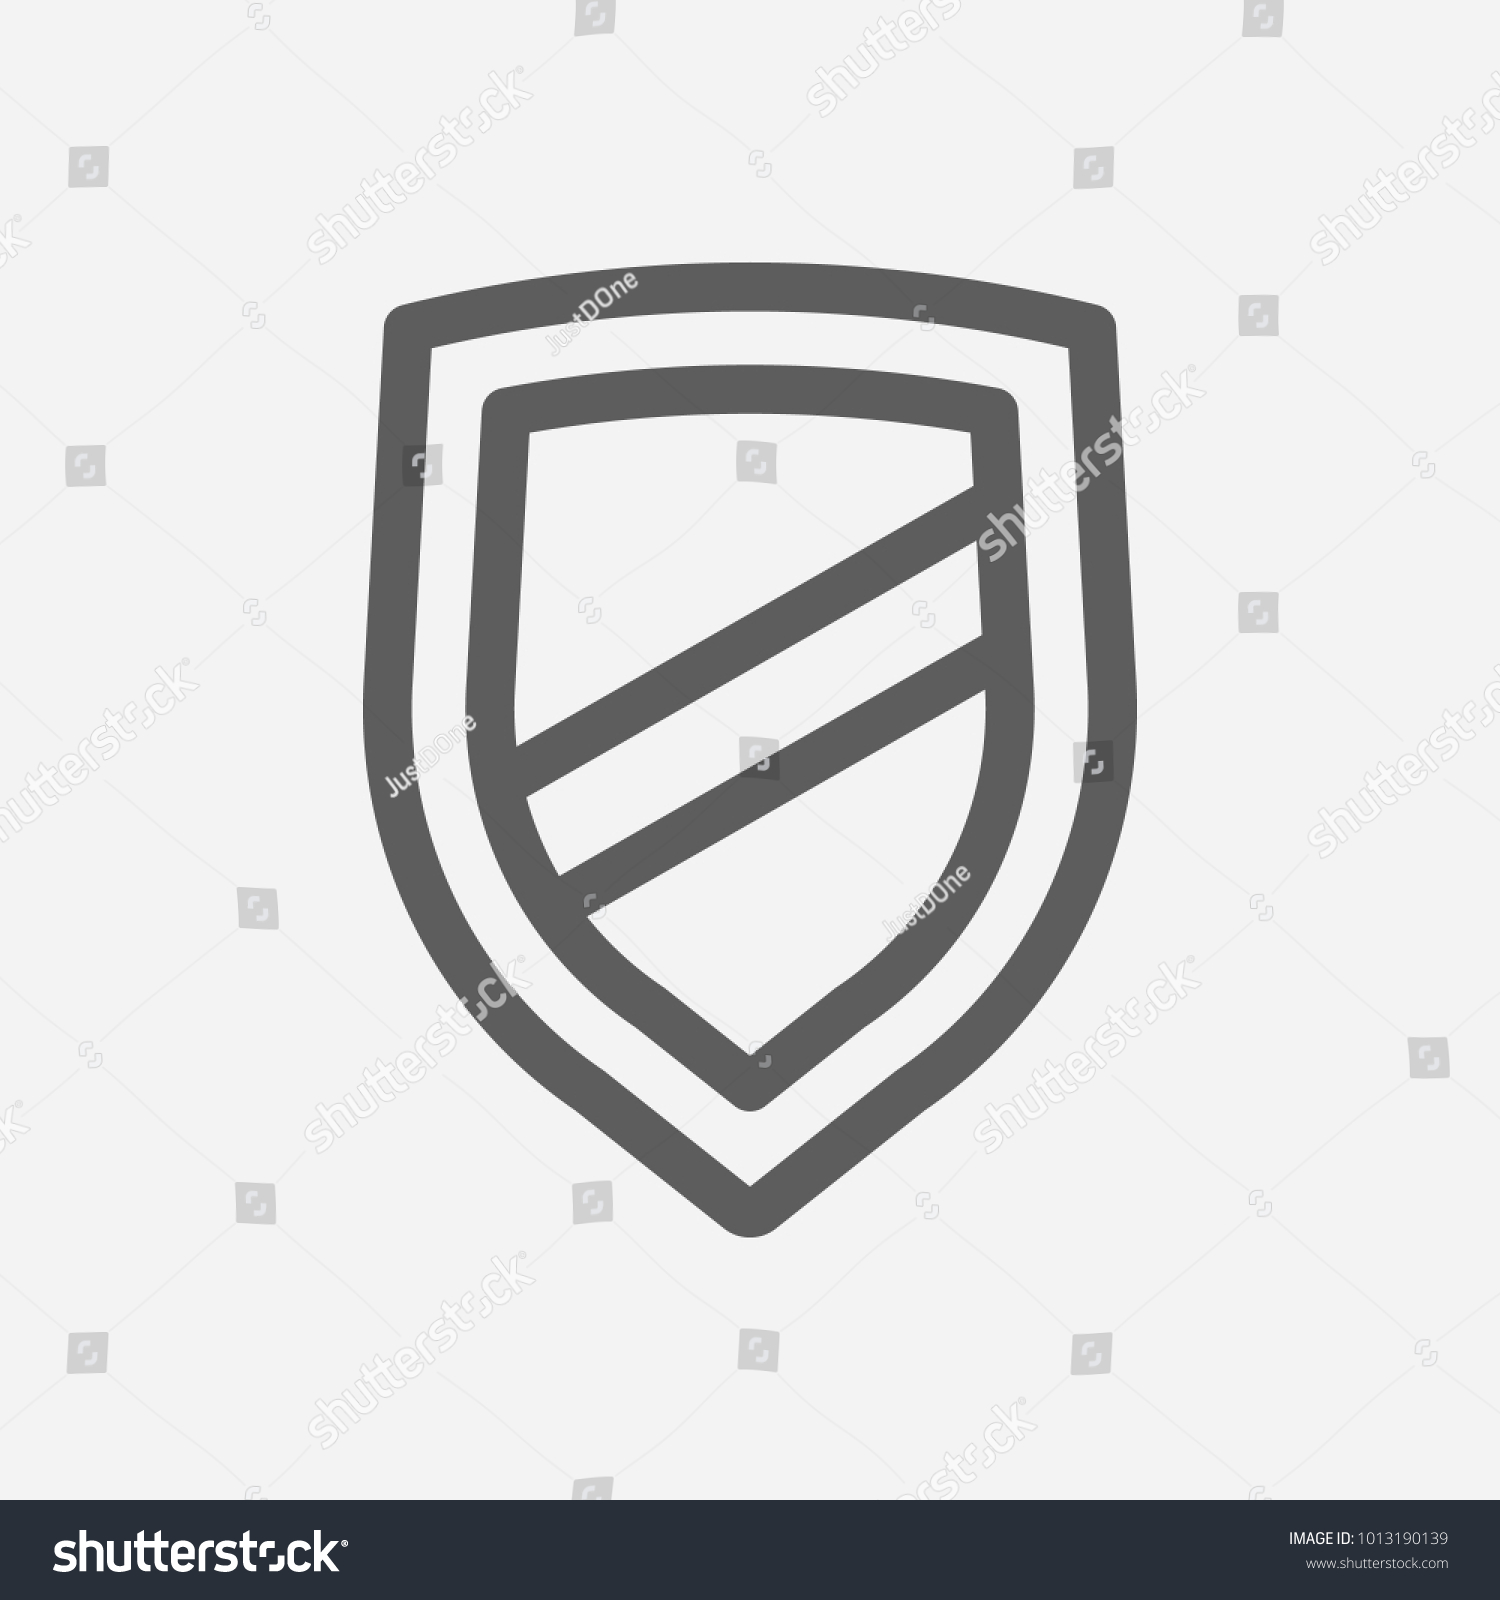 Integrity Value Icon Line Symbol Isolated Stock Vector 1013190139